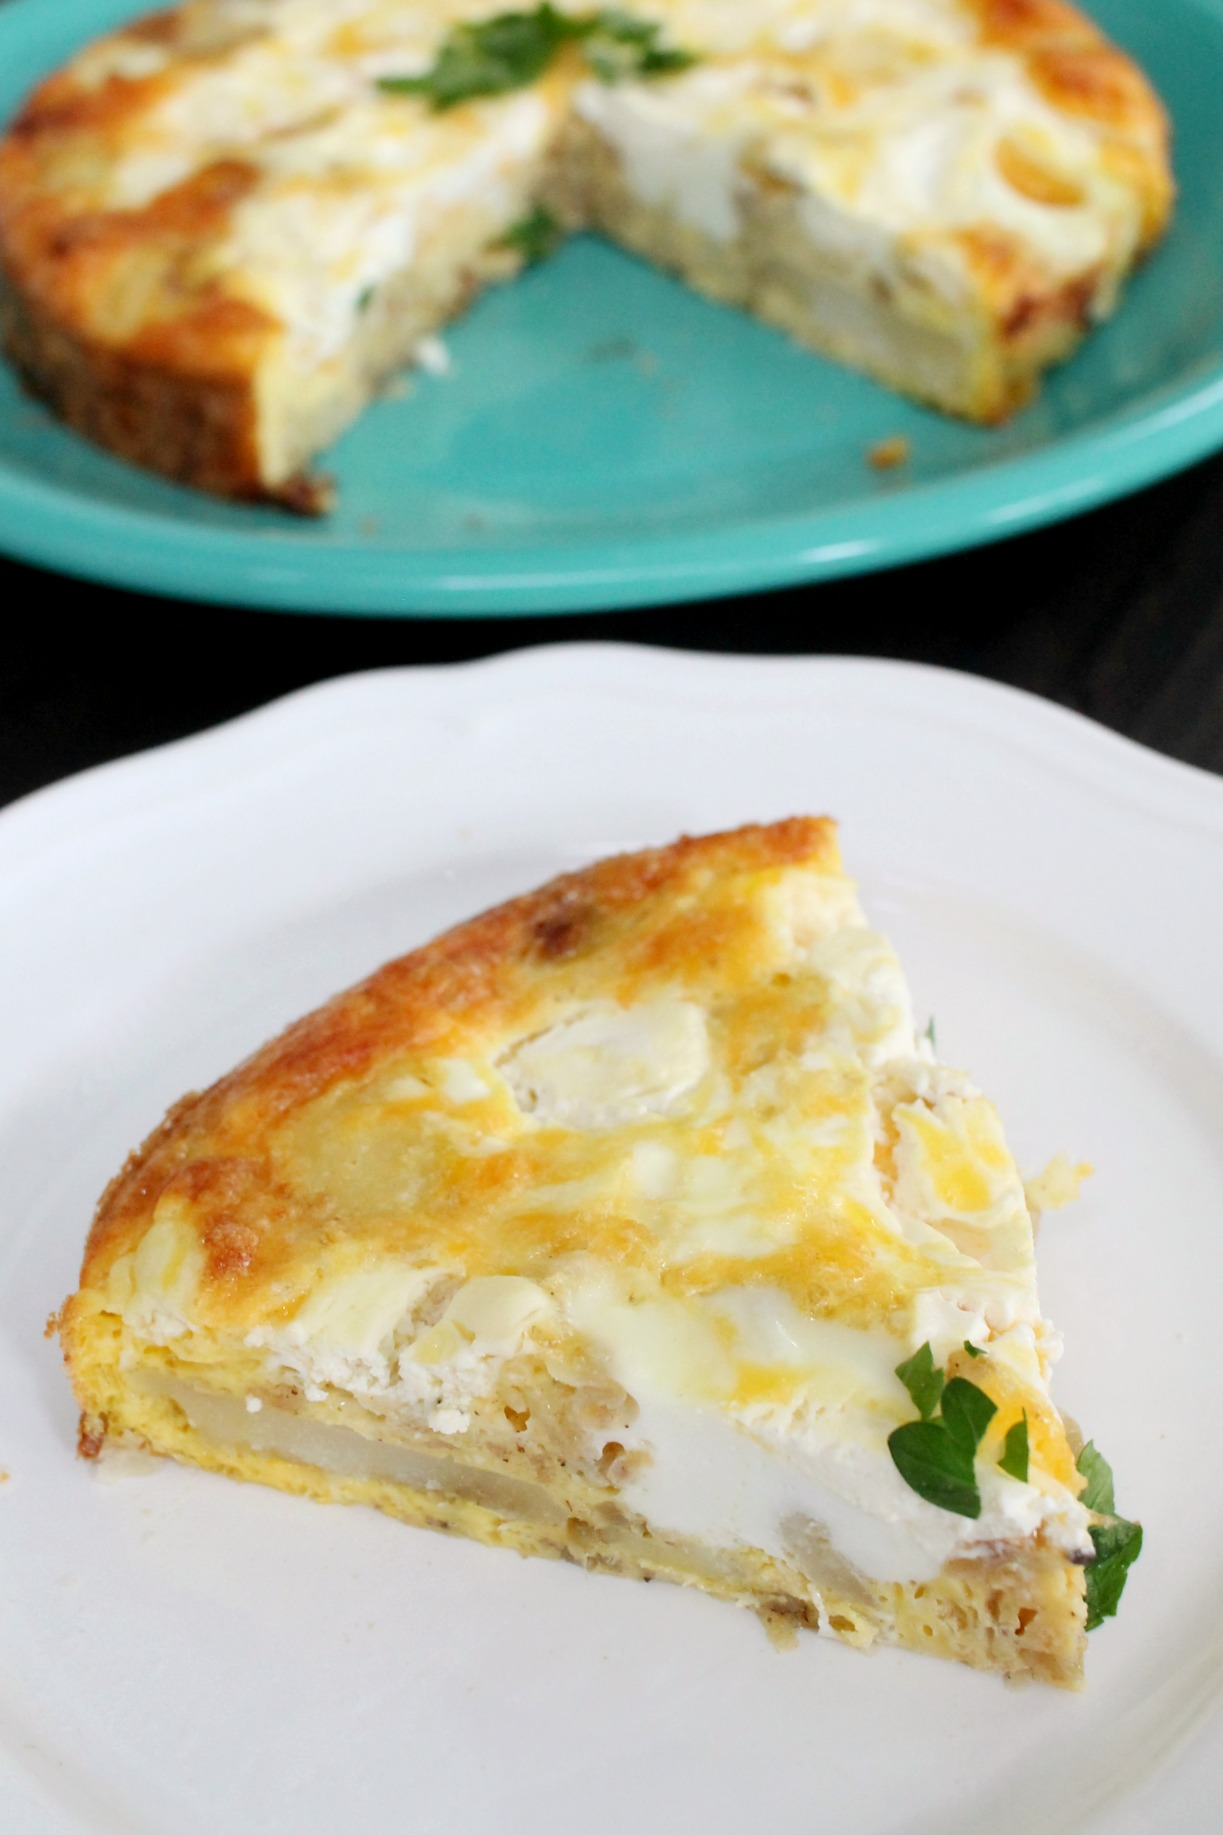 a slice of frittata on a white plate with the rest in the background